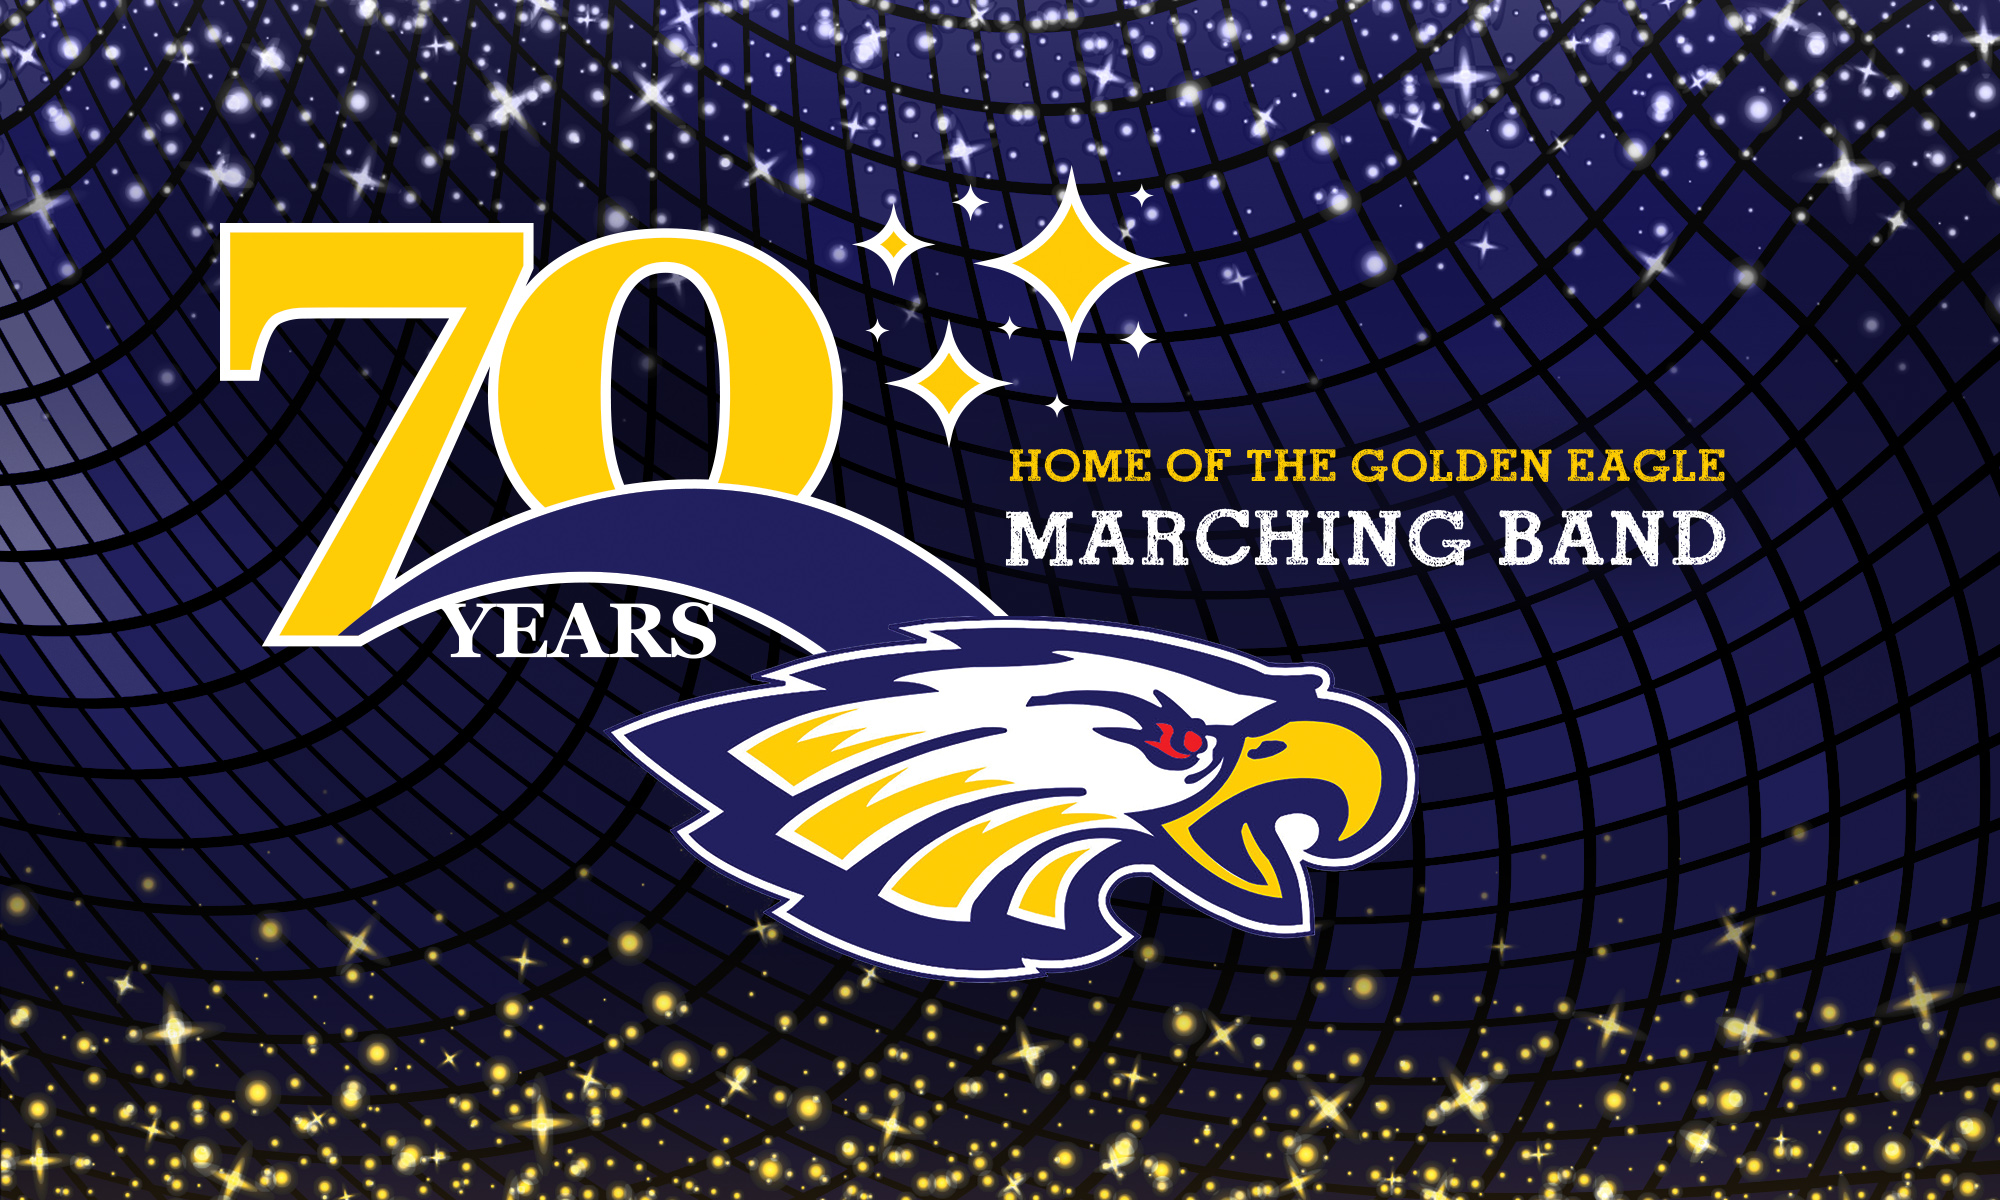 70 Years Home of the Golden Eagle Marching Band